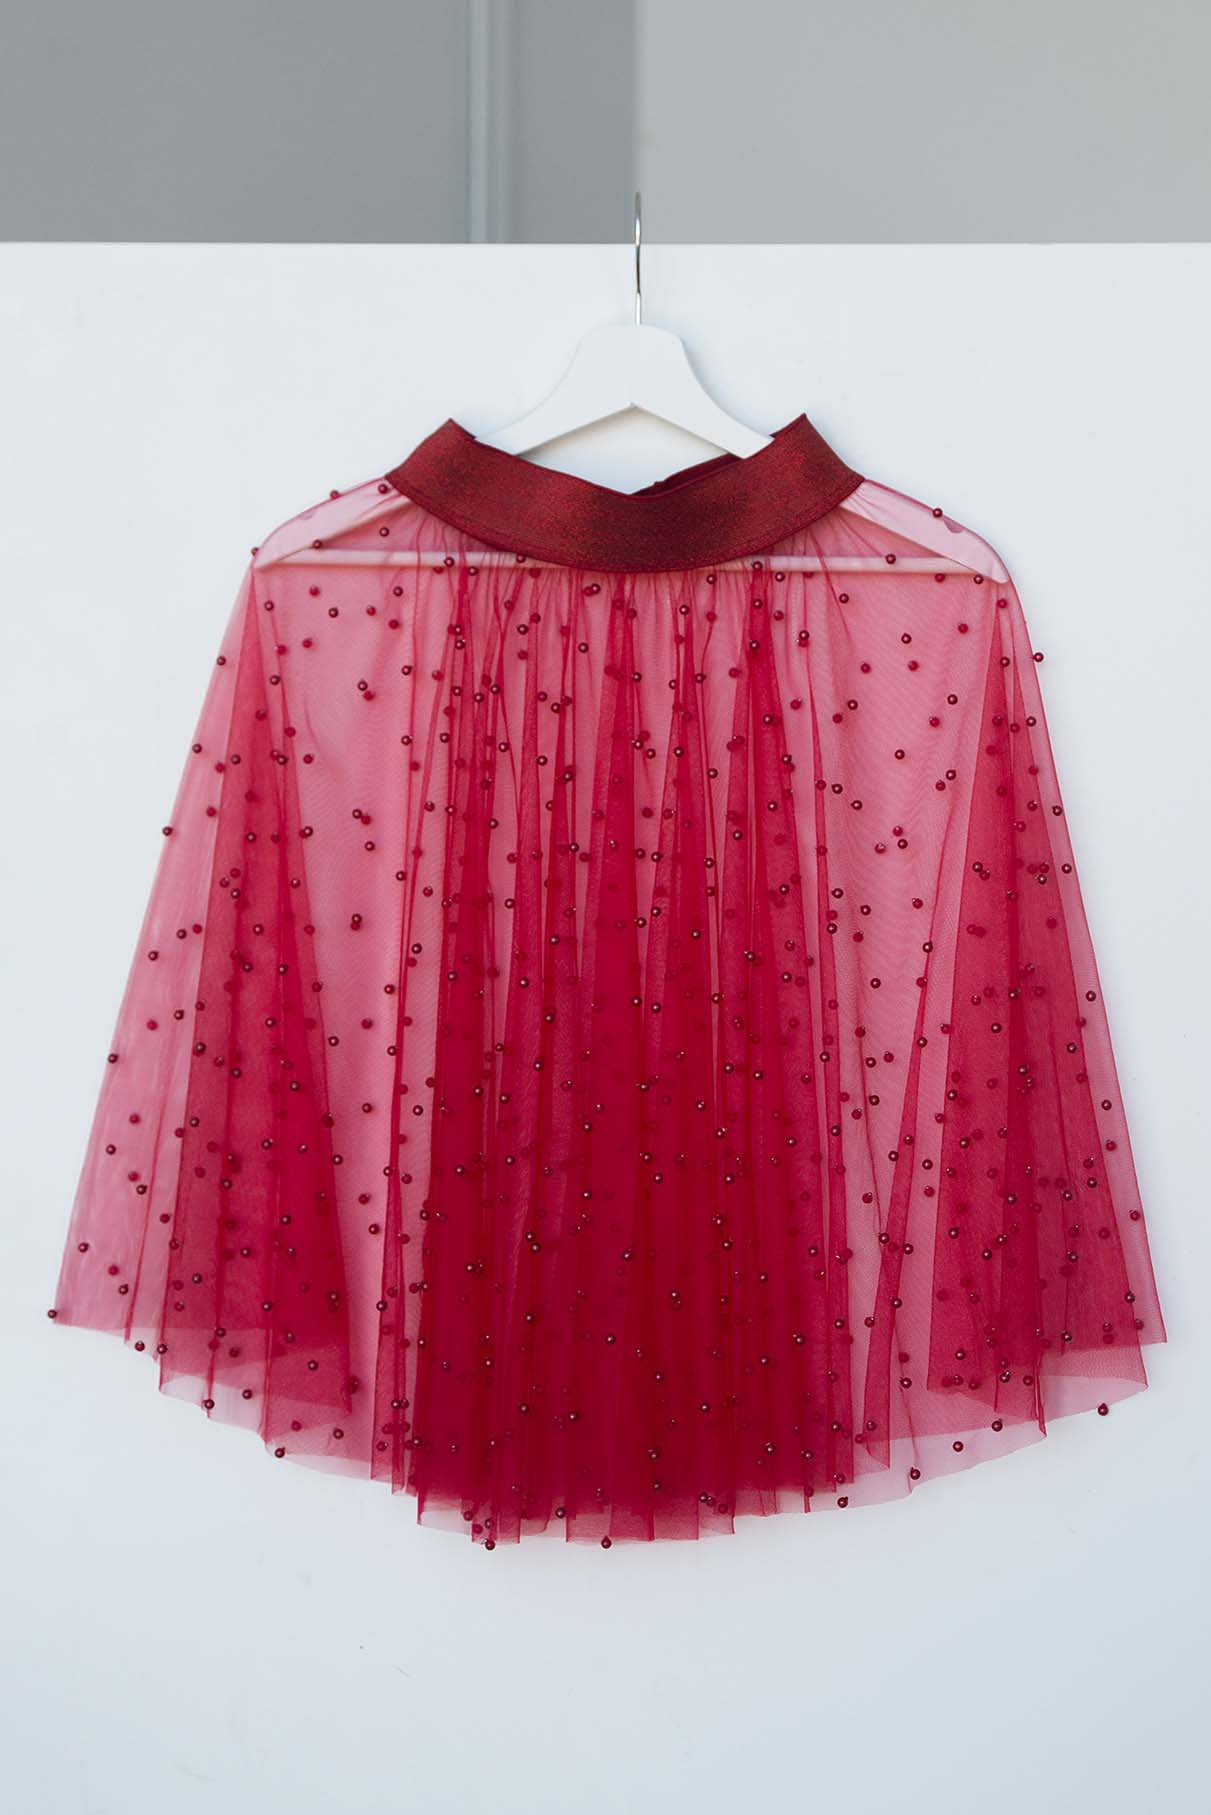 7e67120d758 Red tulle skirt with pearl beads